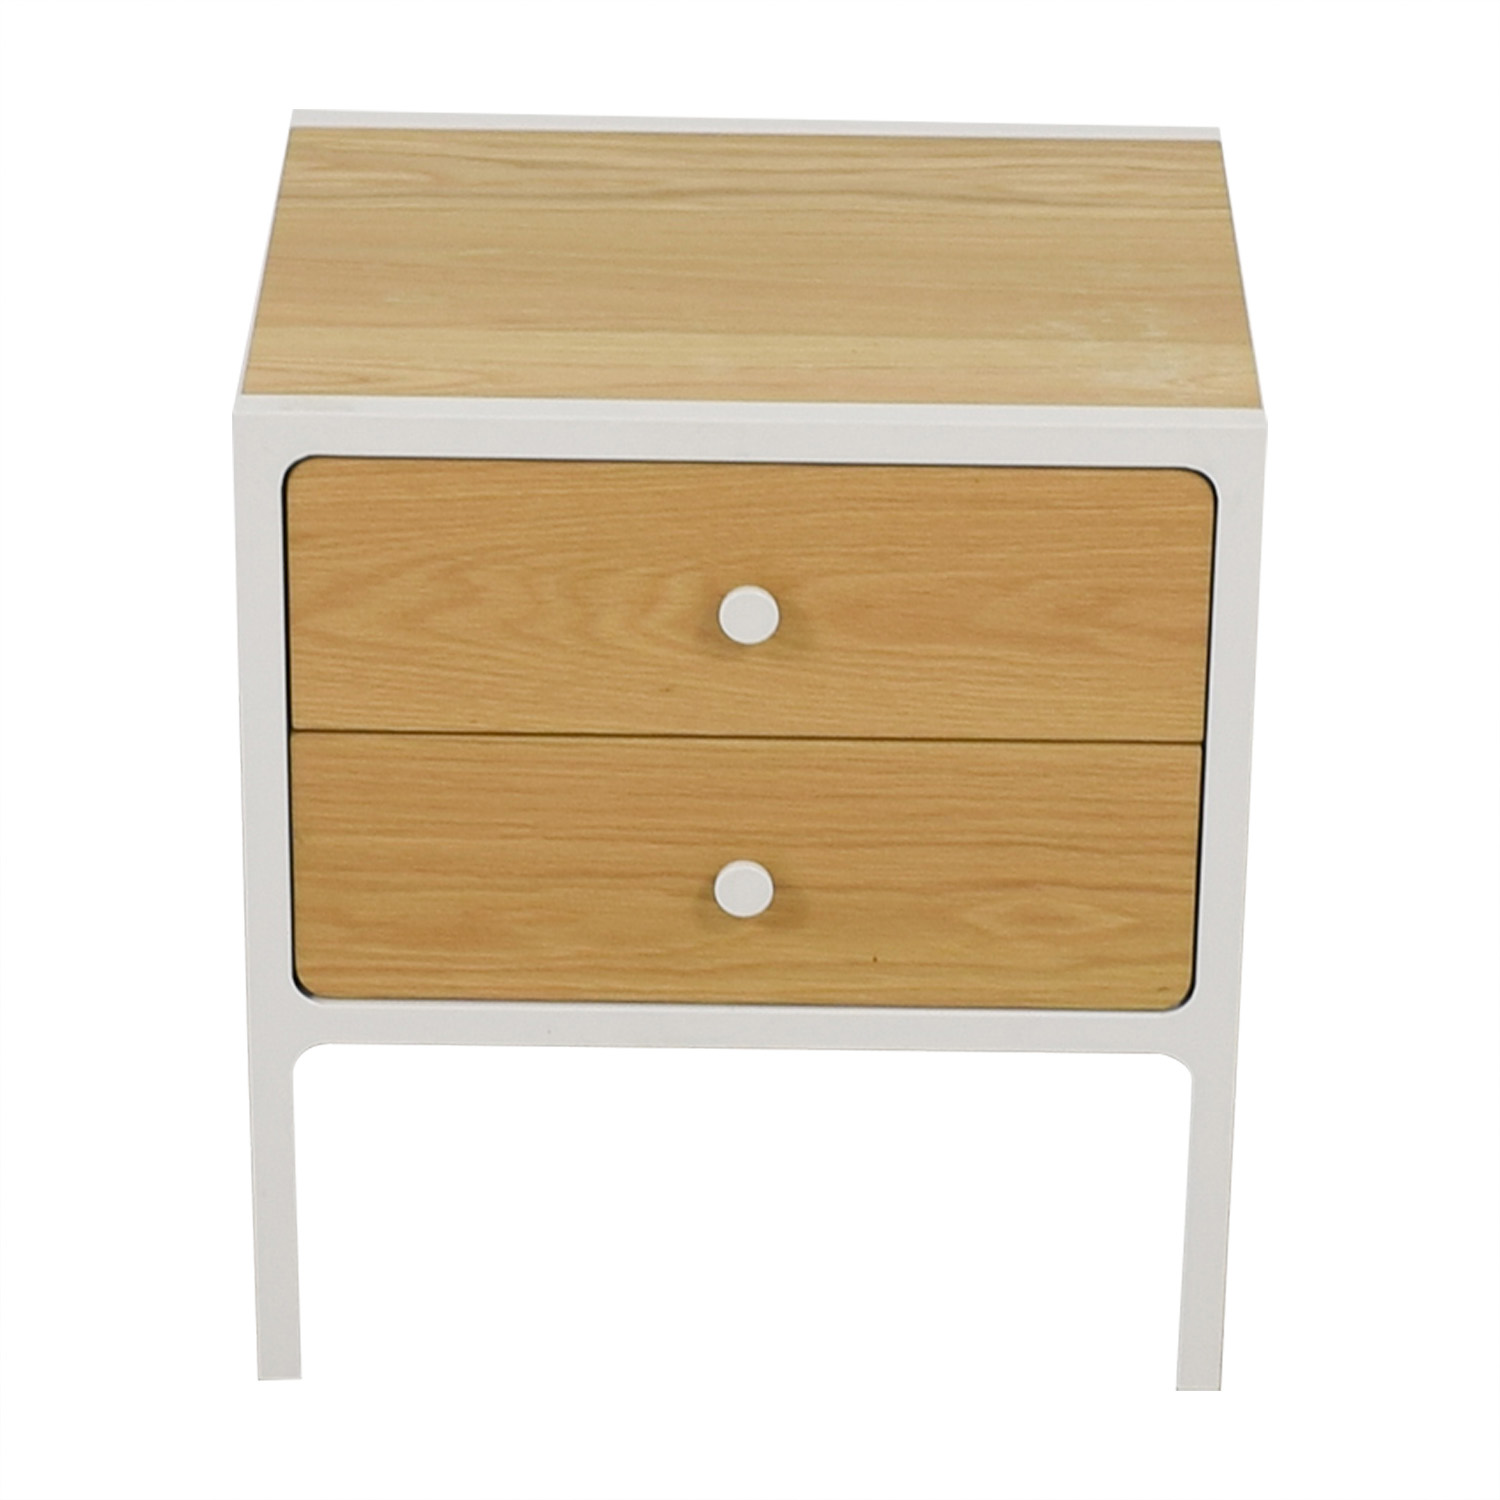 buy Land of Nod Land of Nod Larkin Nightstand online